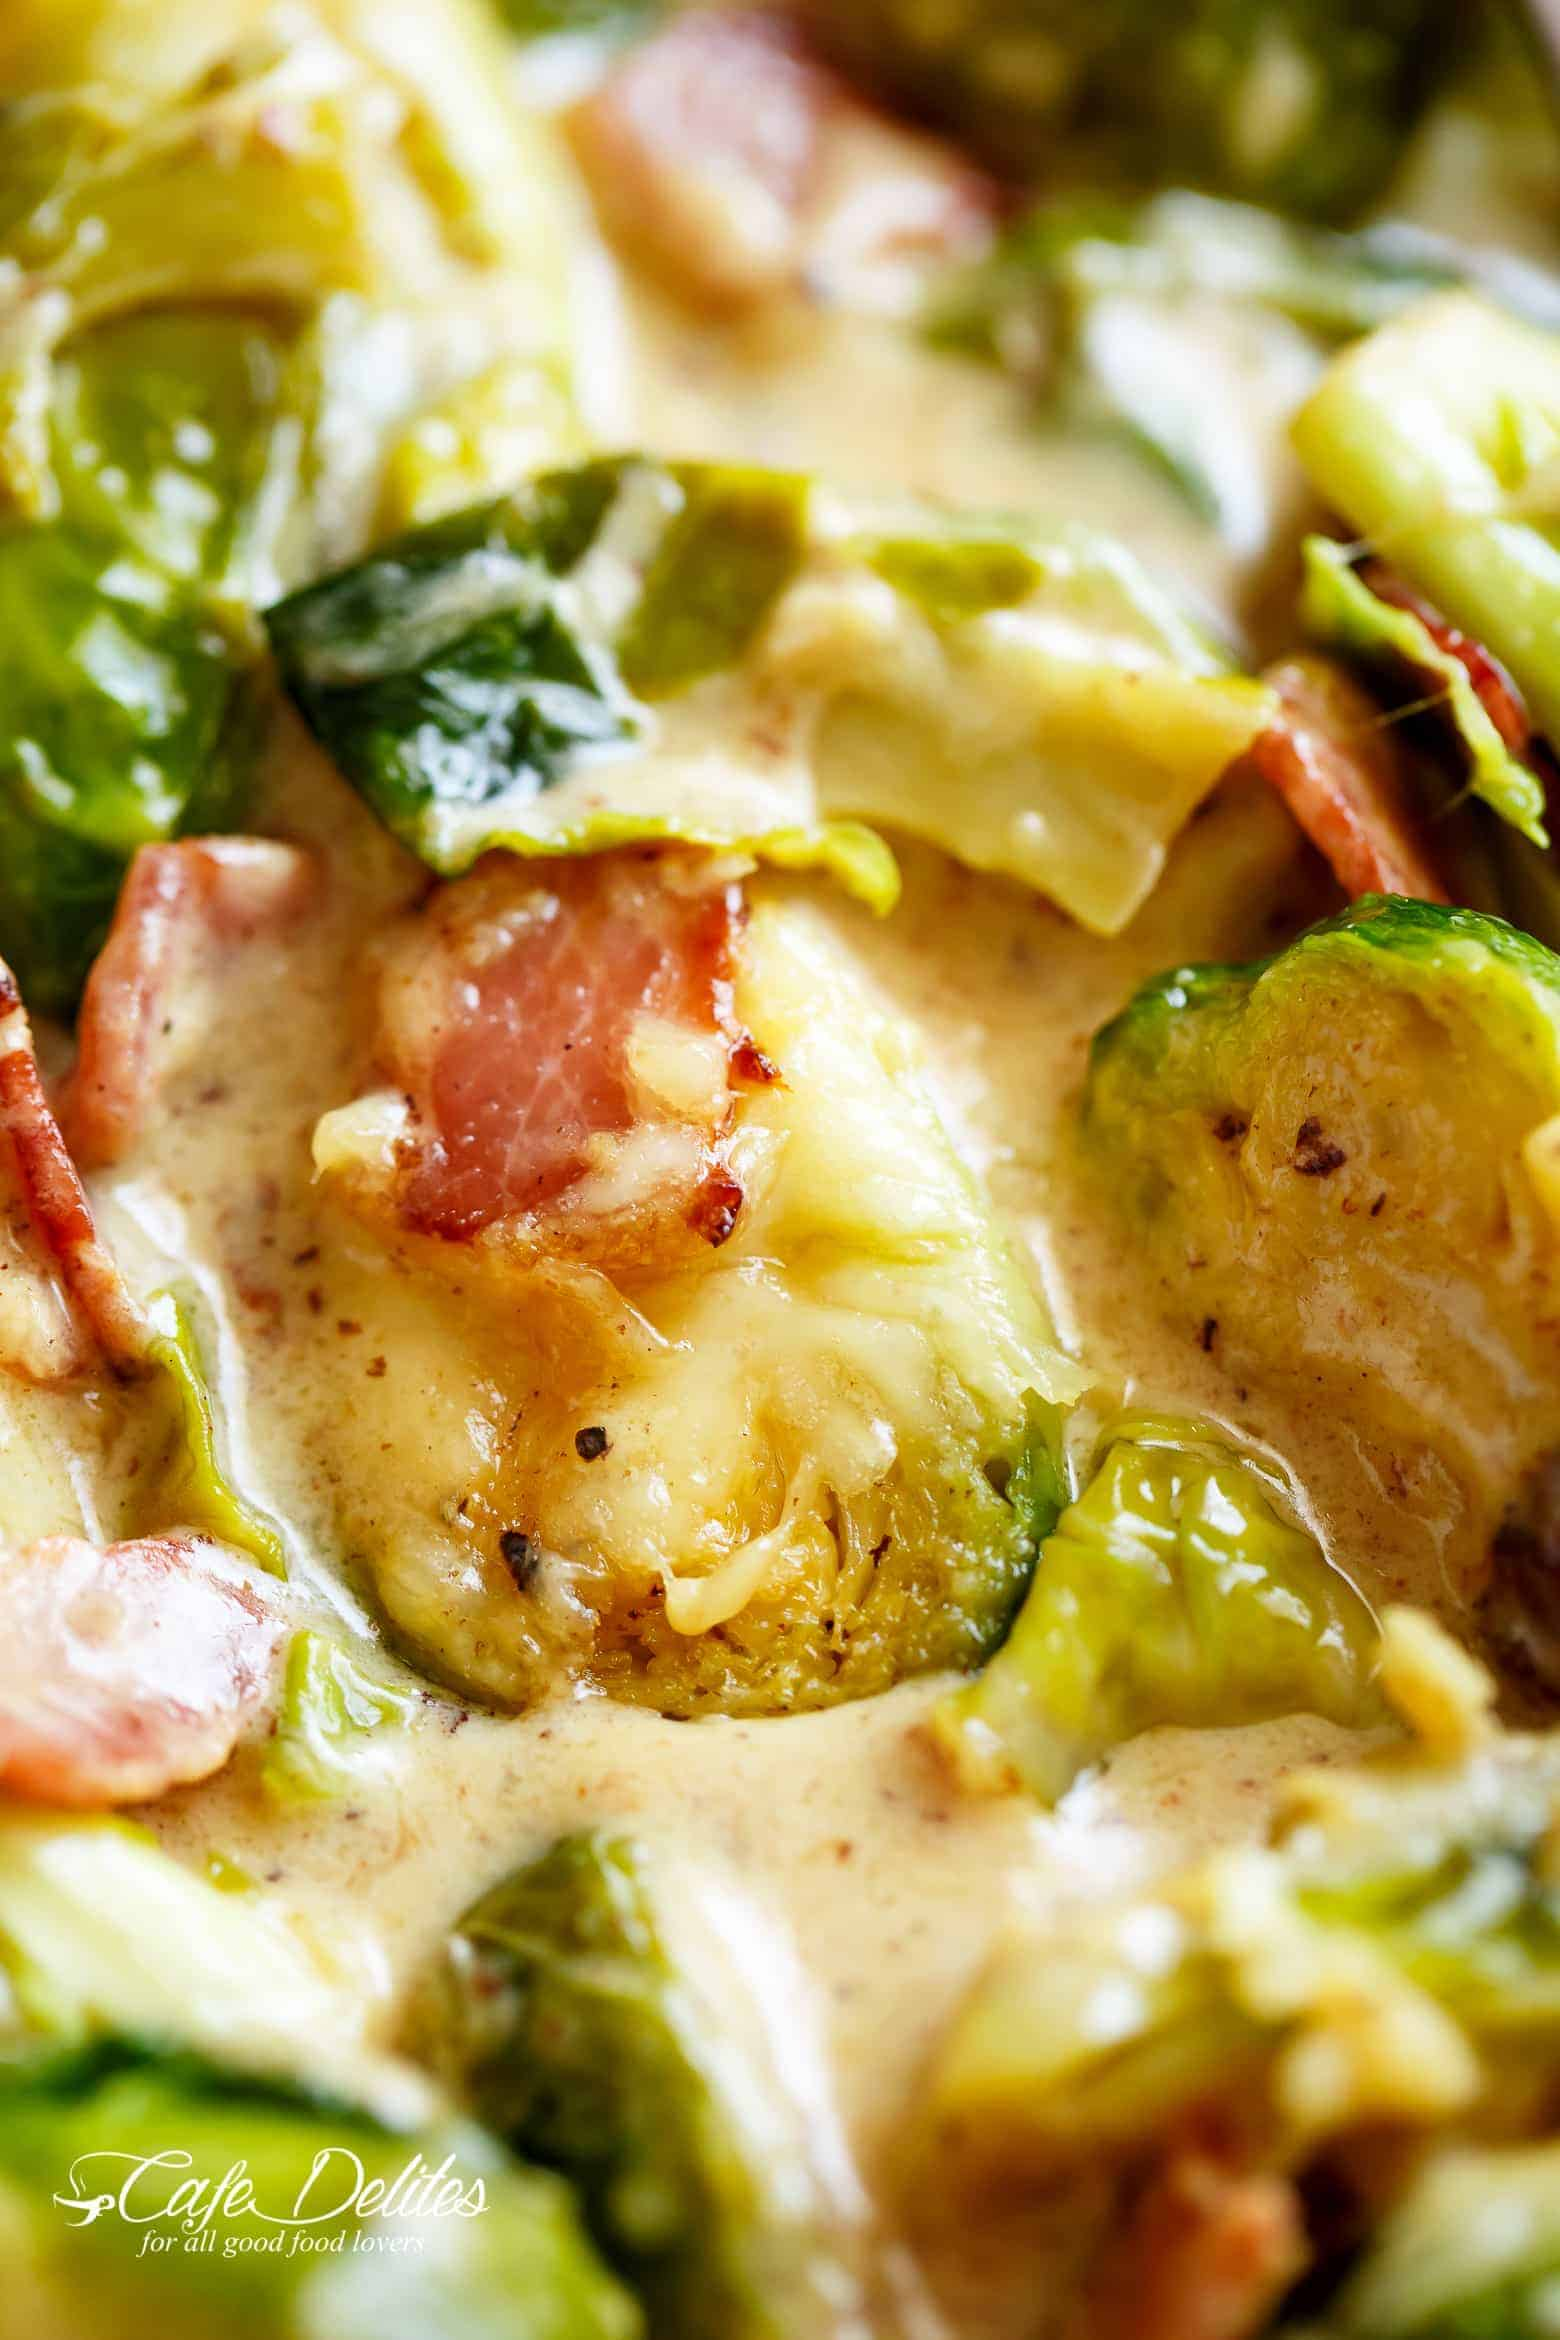 A close up of Brussel Sprouts in a cheesy cream sauce with crispy bacon pieces.